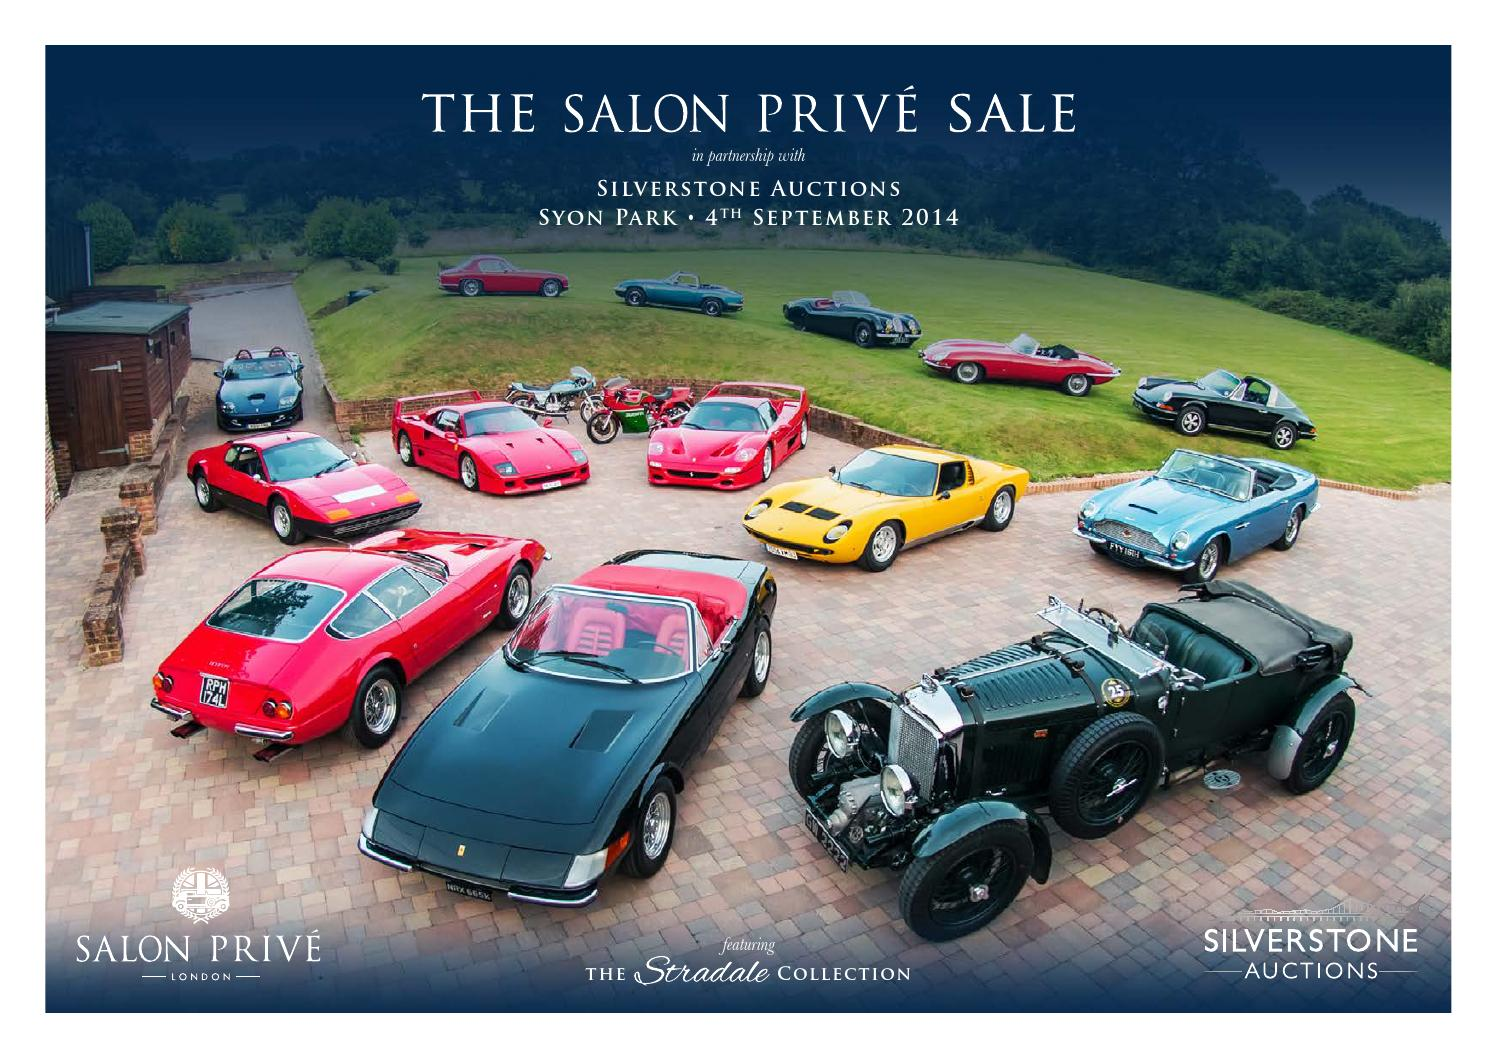 The Salon Priv Sale Auction Catalogue By Marcelle Smith Issuu 1951 Simca Wiring Diagram